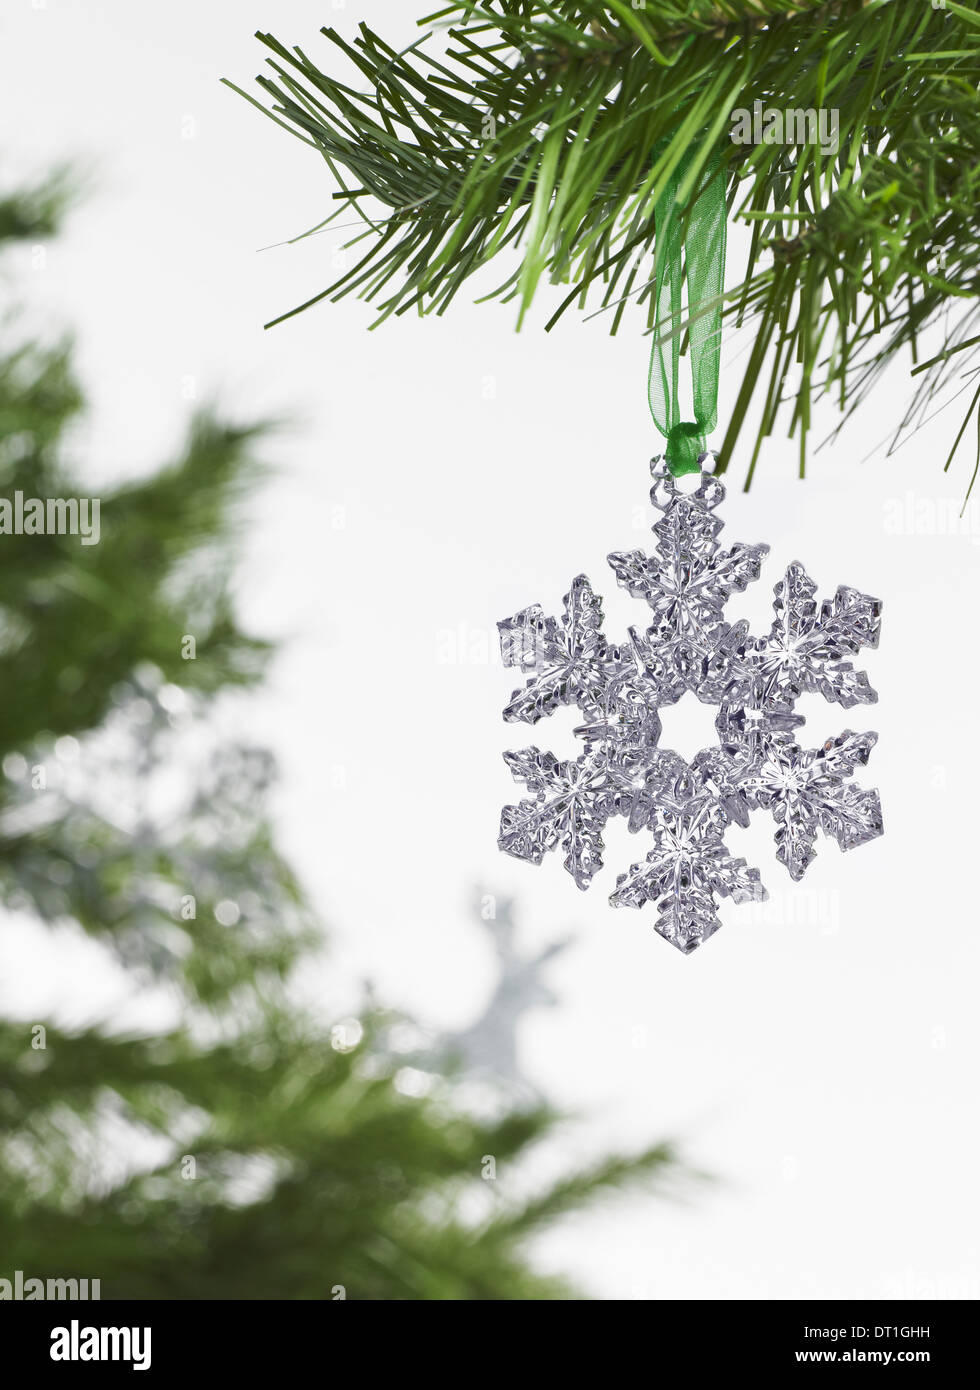 Icicle Ornament Christmas Tree Stock Photos & Icicle Ornament ...